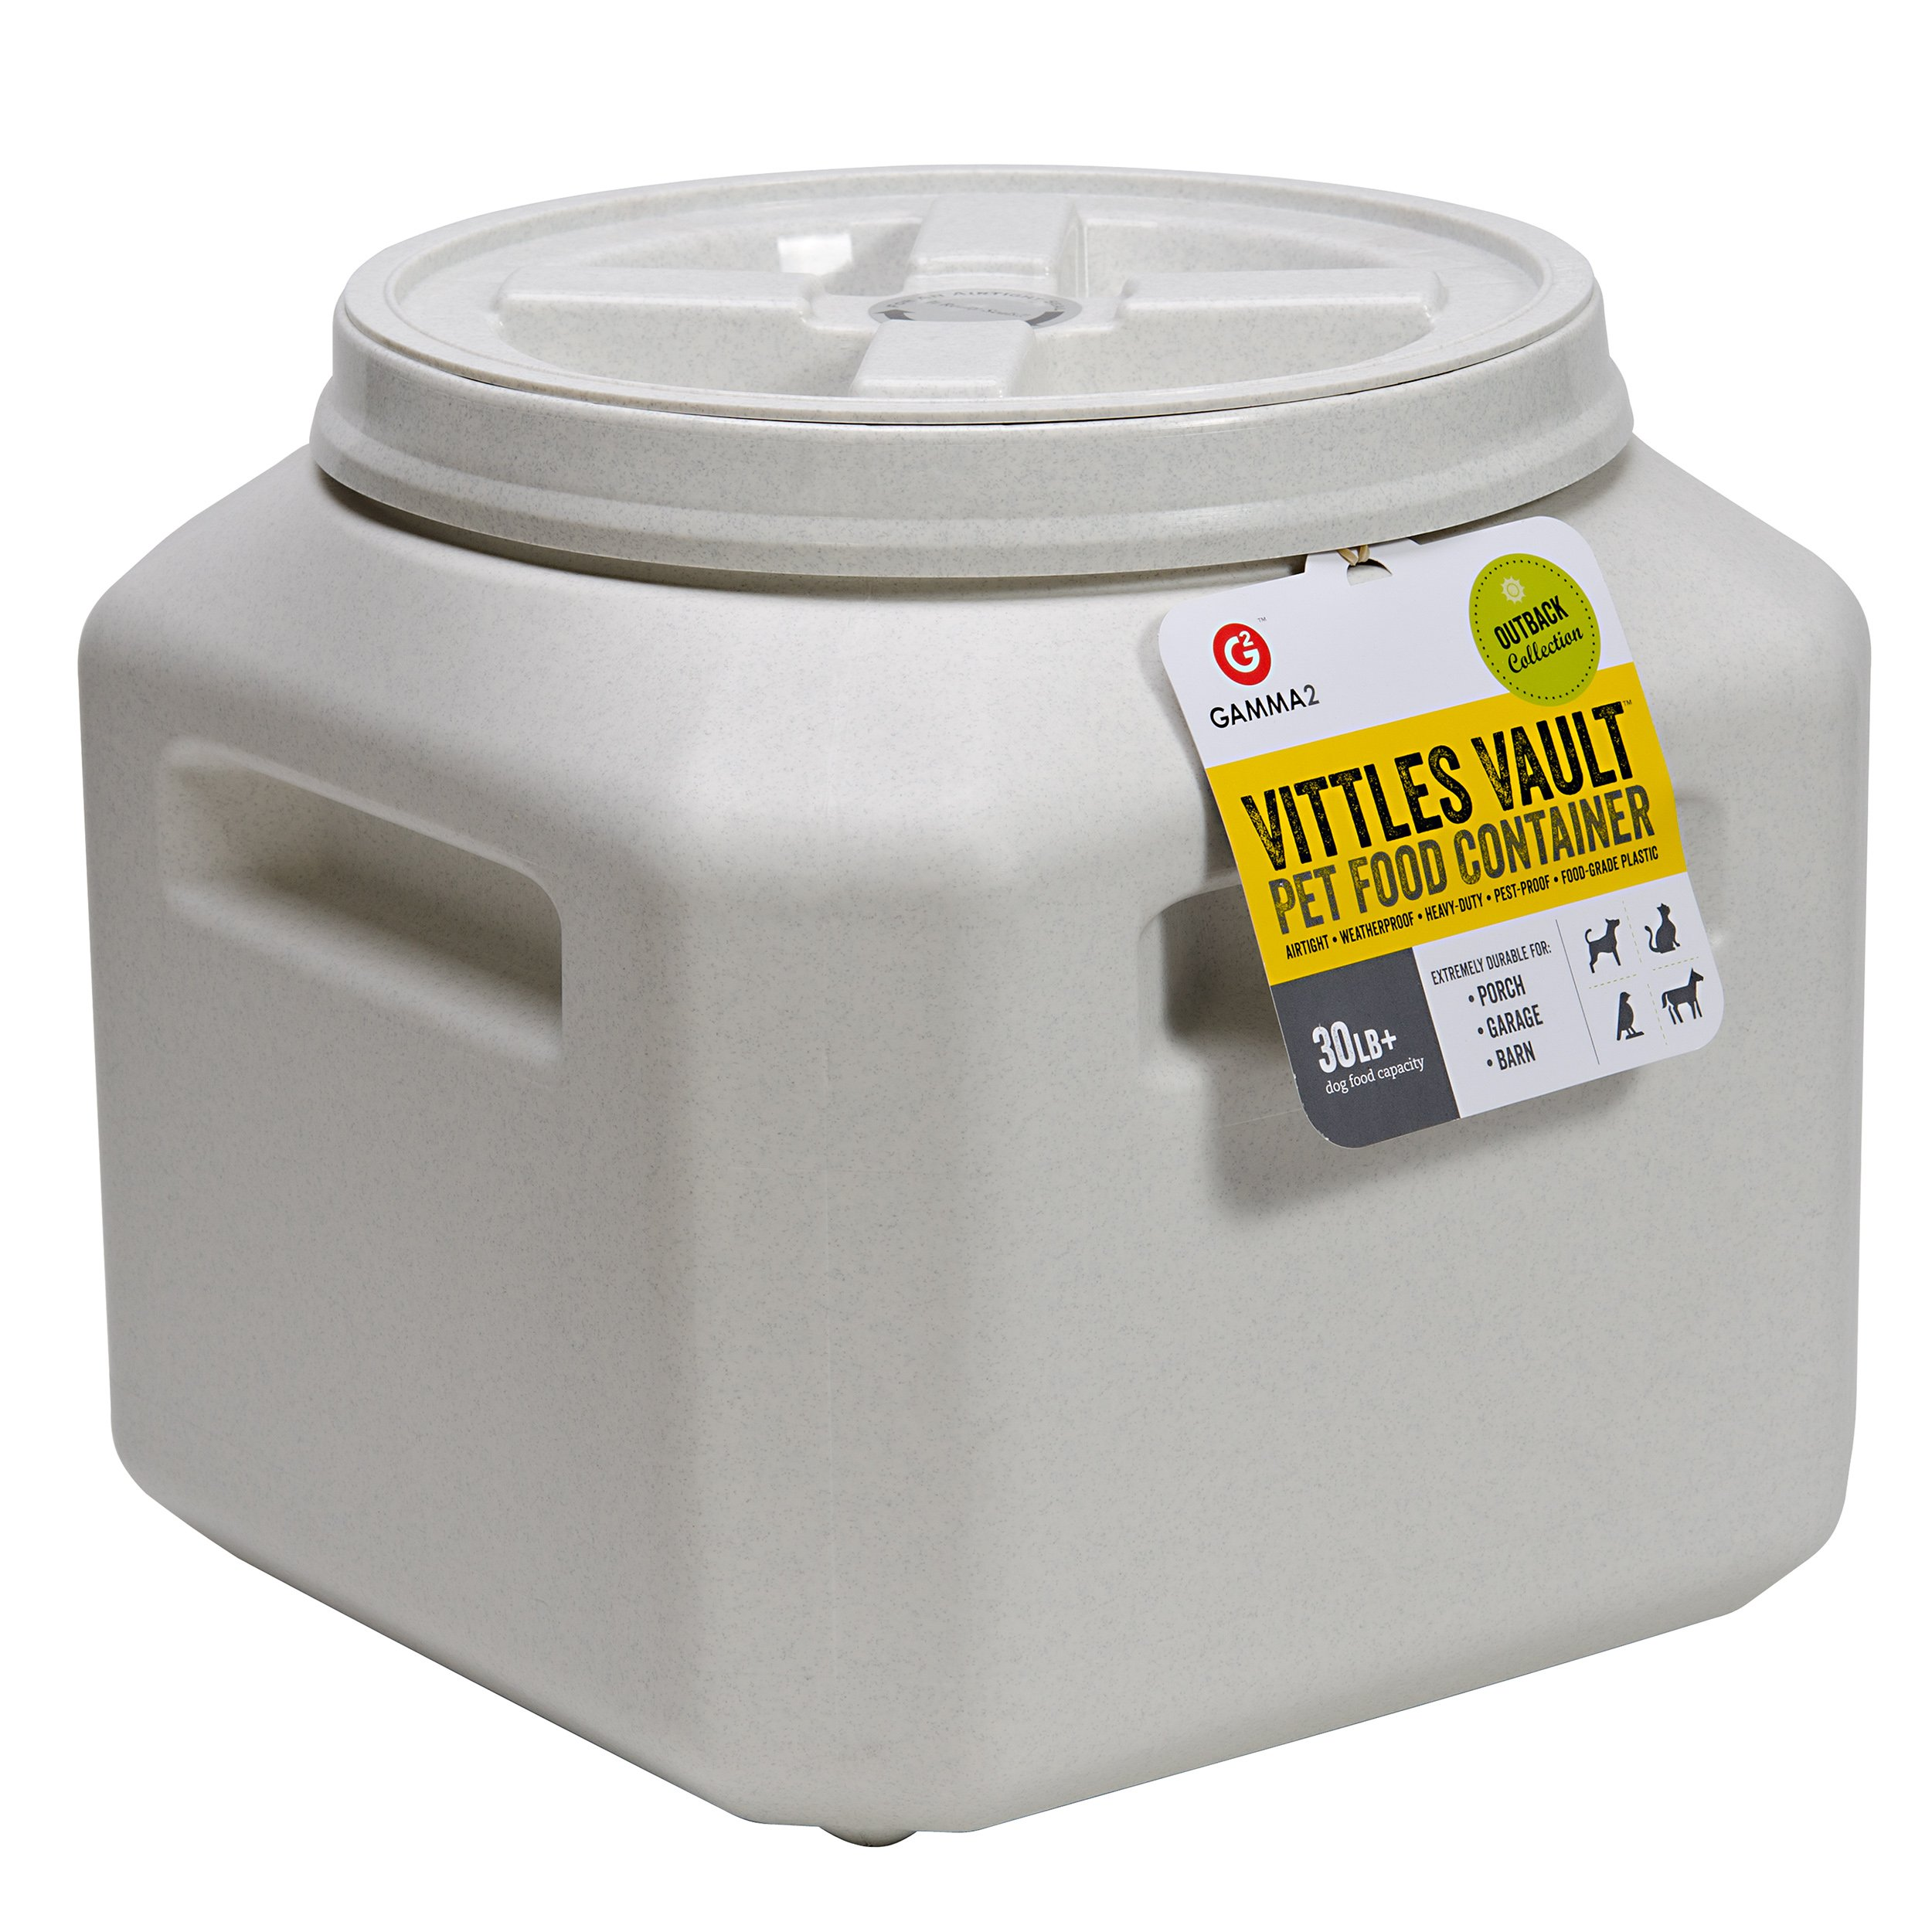 Vittles Vault Stackable Pet Food Container 30-lb capacity